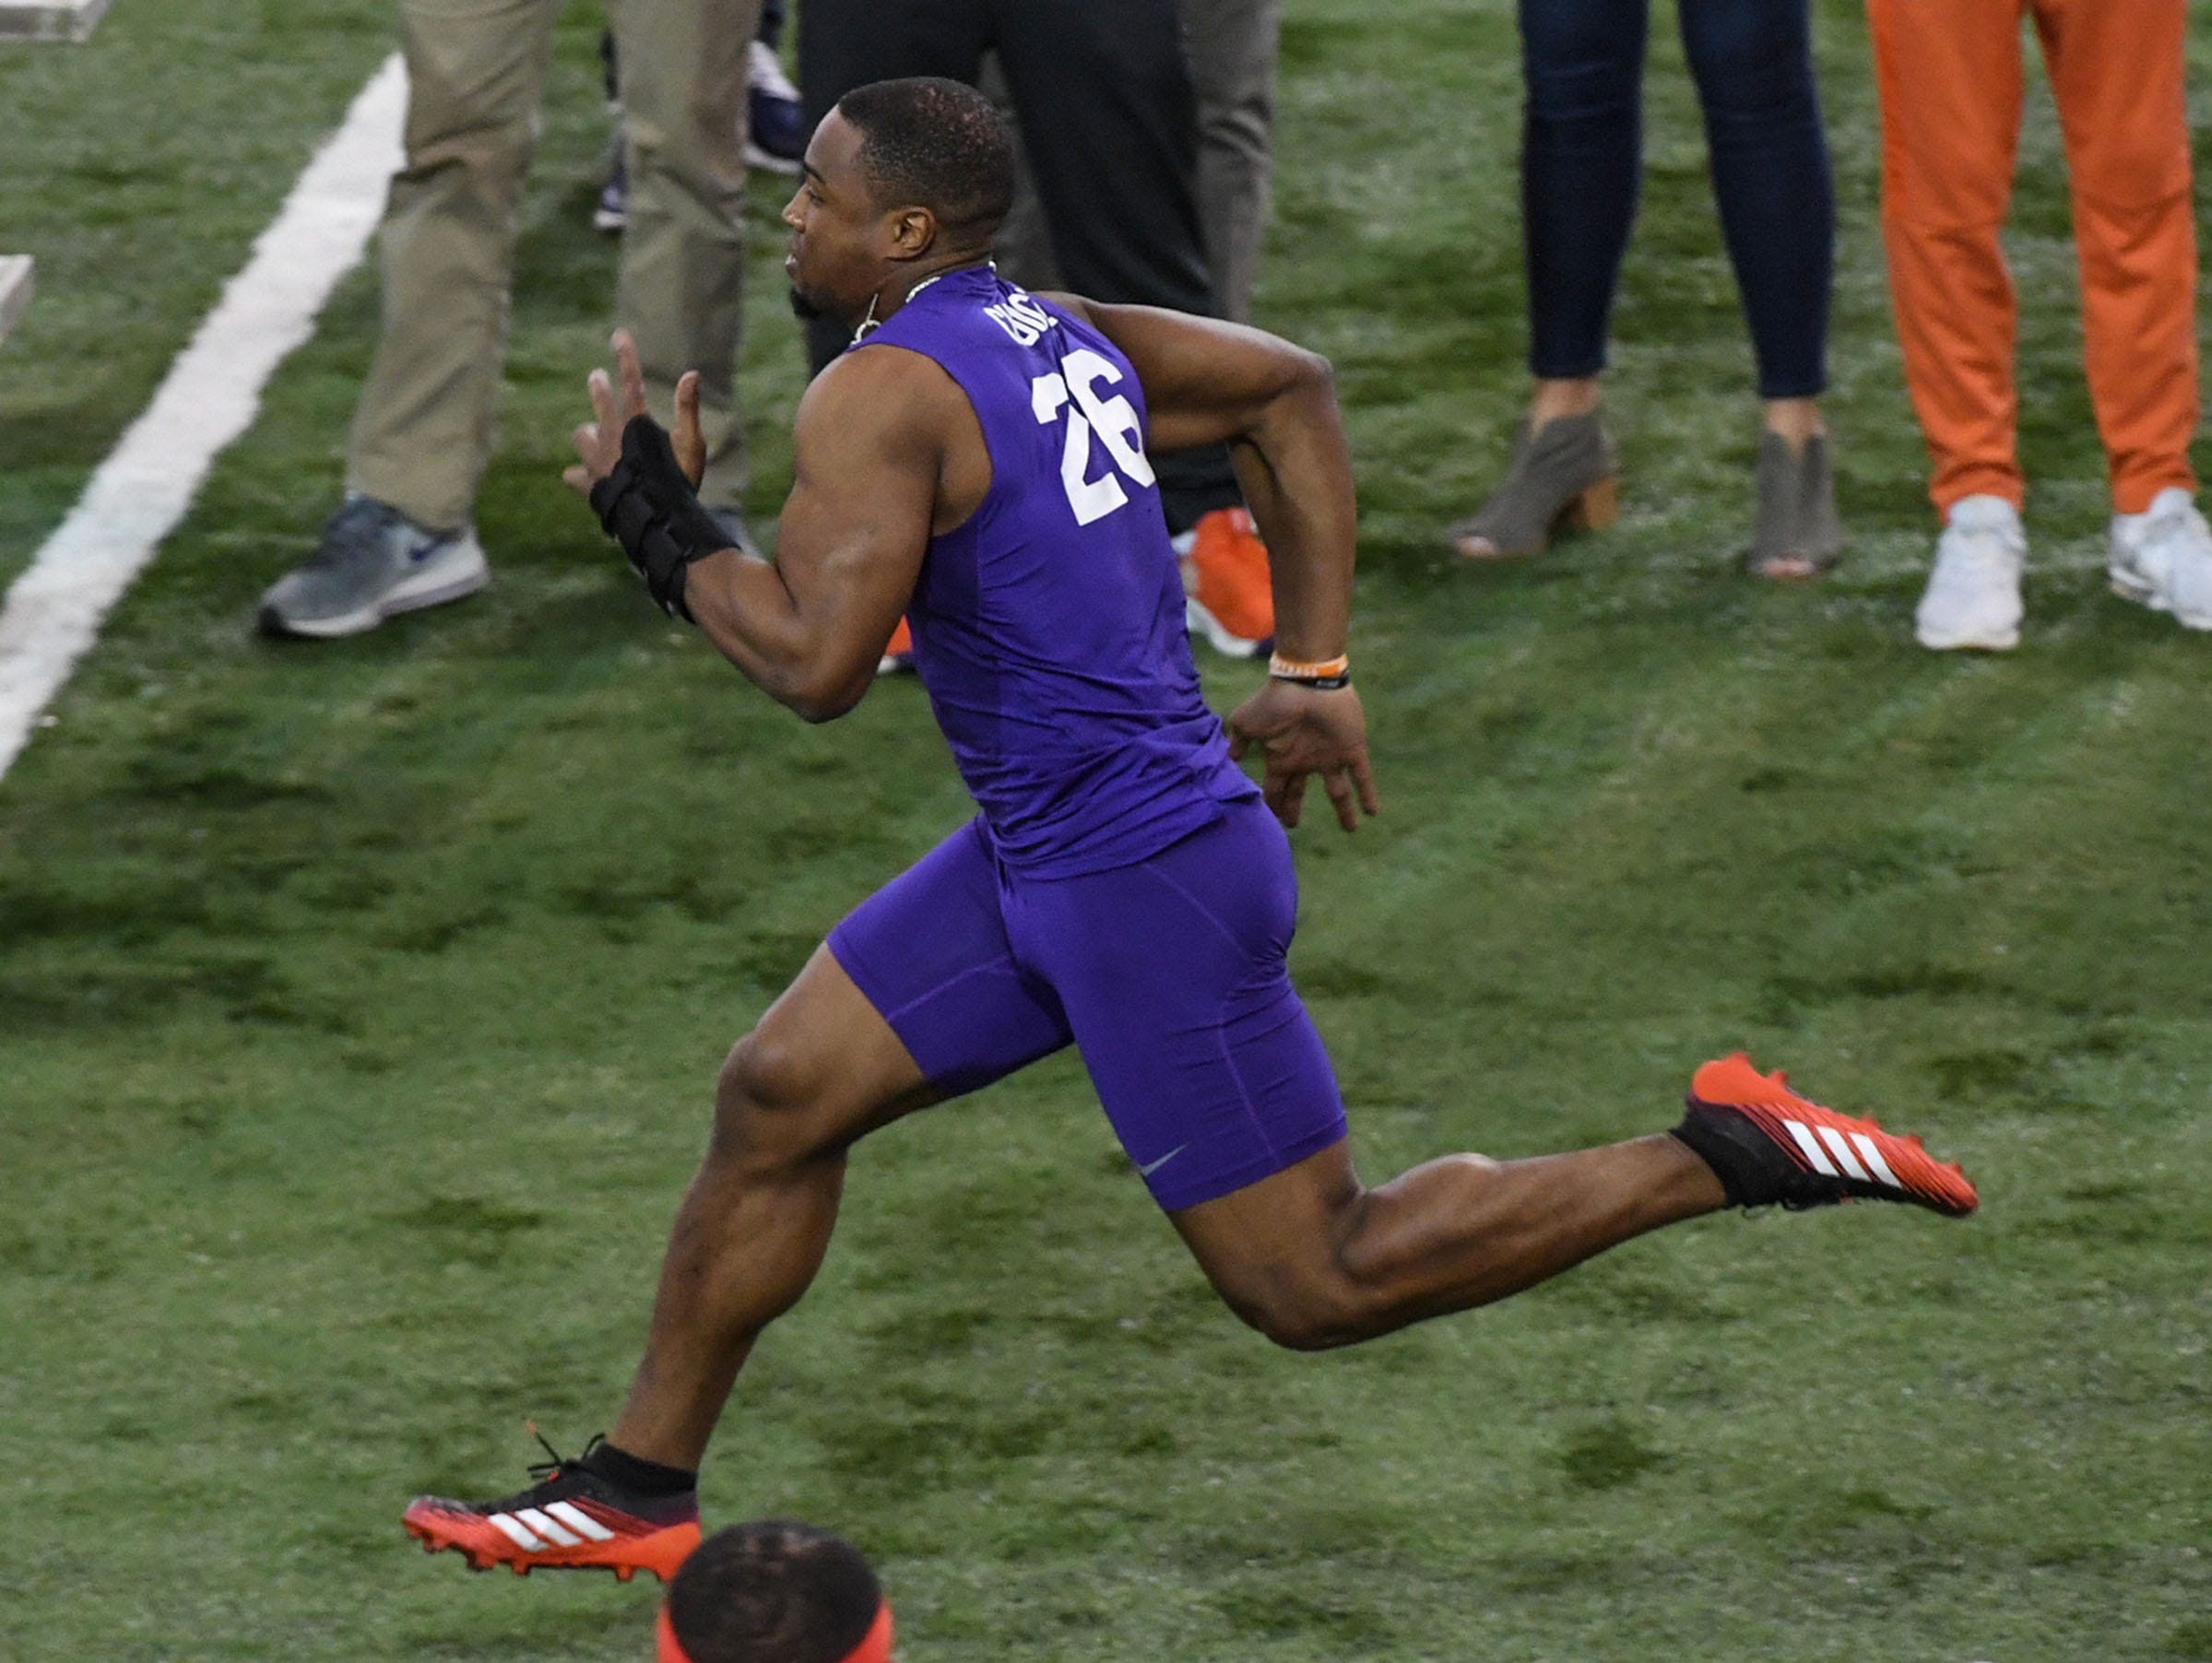 Former Clemson running back Adam Choice runs a 4.52 40-yard dash during Clemson Pro Day at the Poe Indoor Facility in Clemson, S.C. Thursday, March 14, 2019.